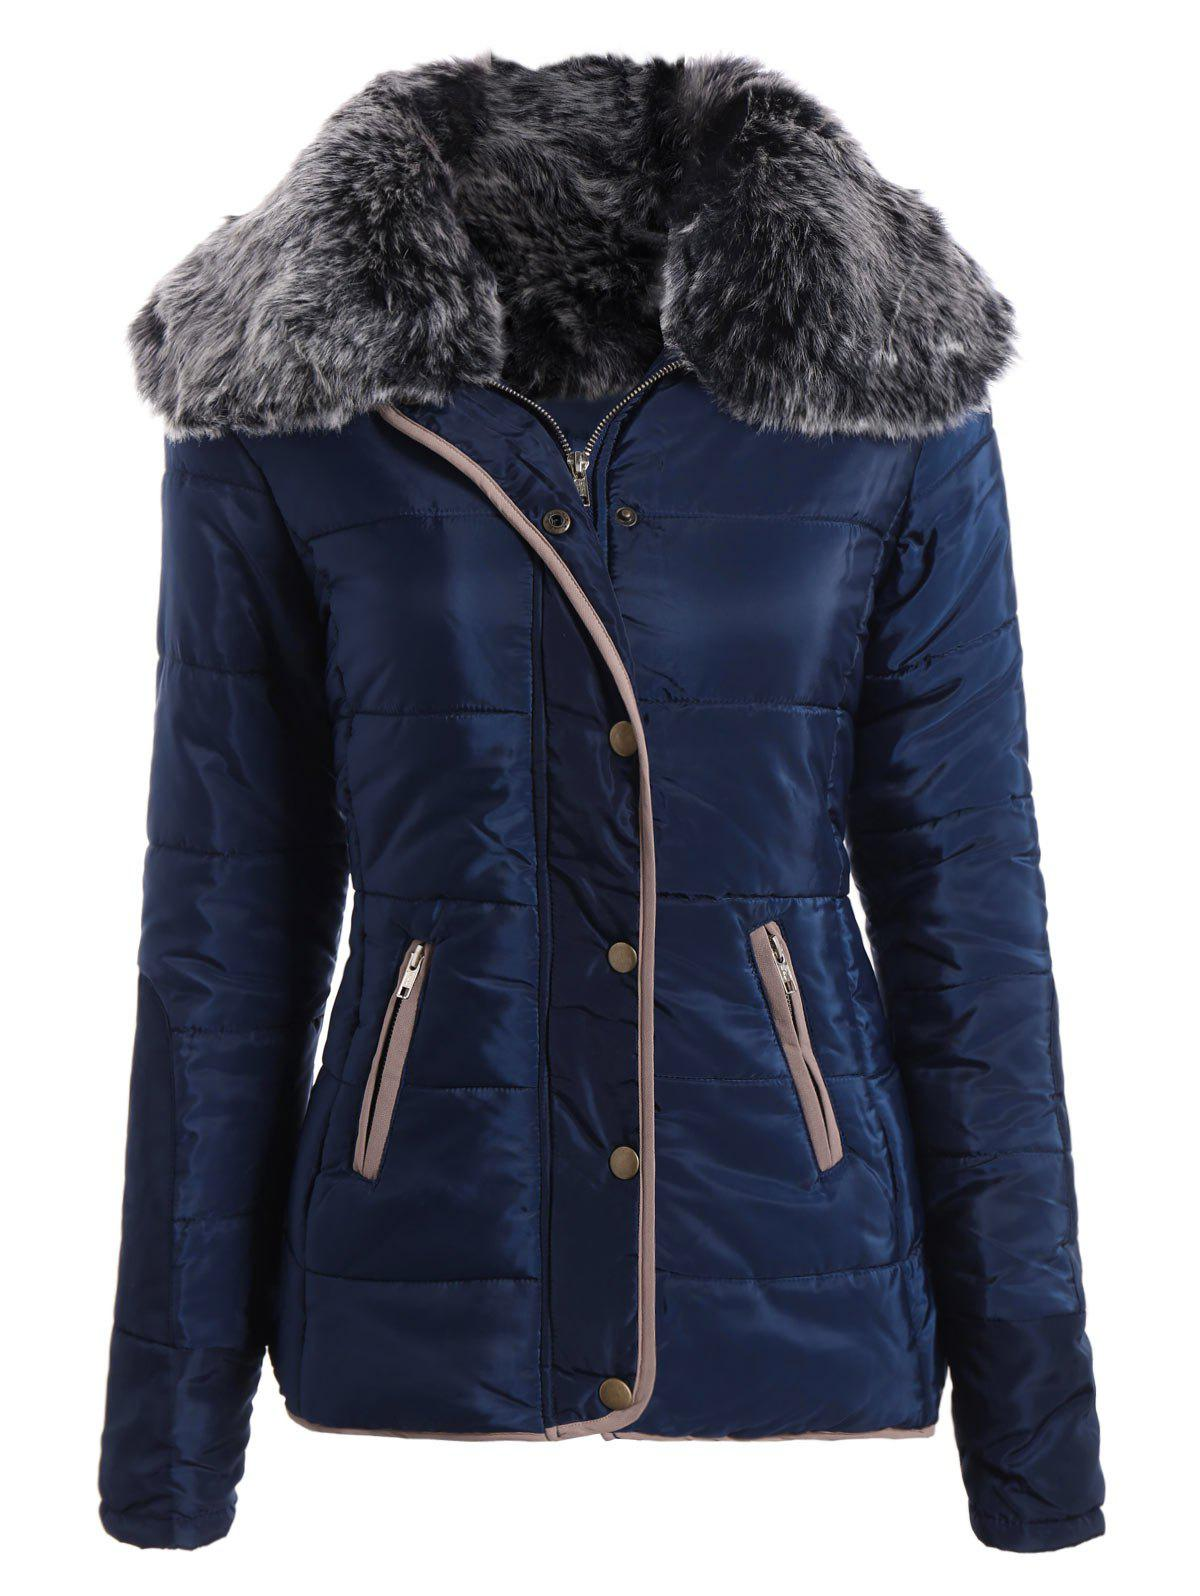 New Long Sleeve Pocket Design Winter Padded Coat Jacket